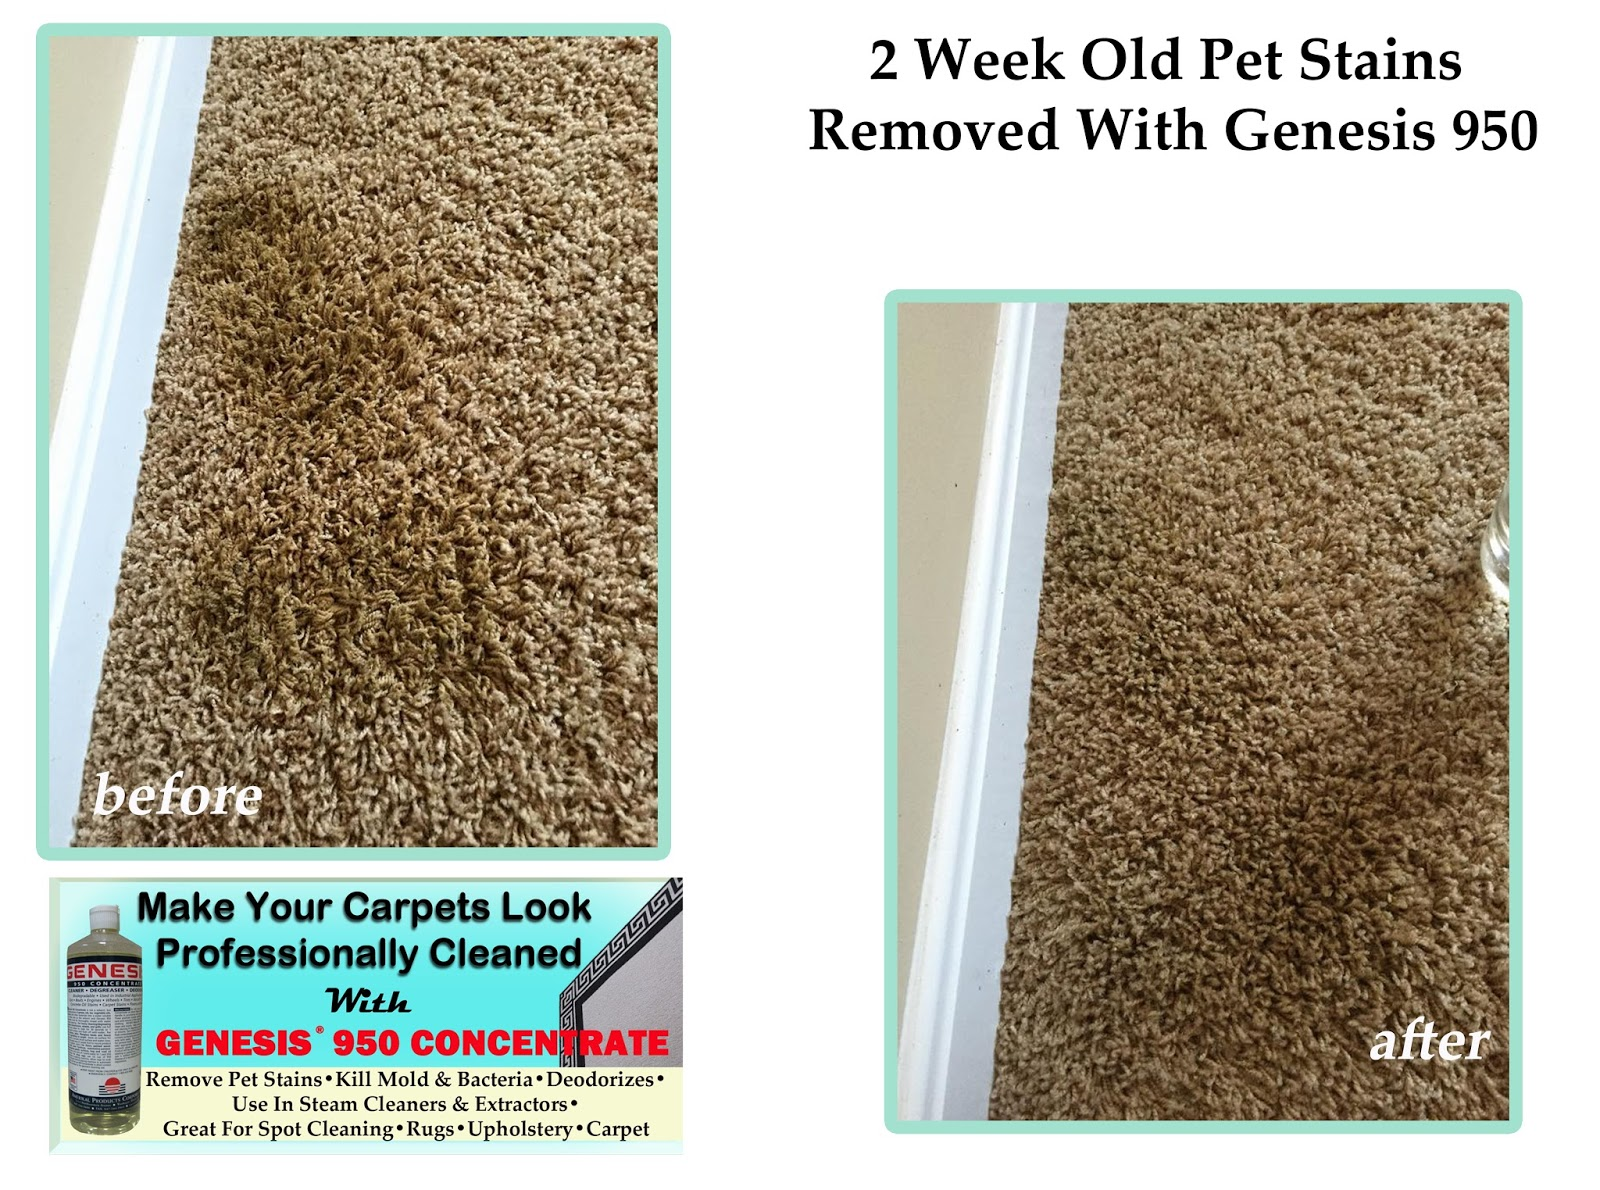 Best Carpet Cleaner And Stain Remover: Genesis 950 Before